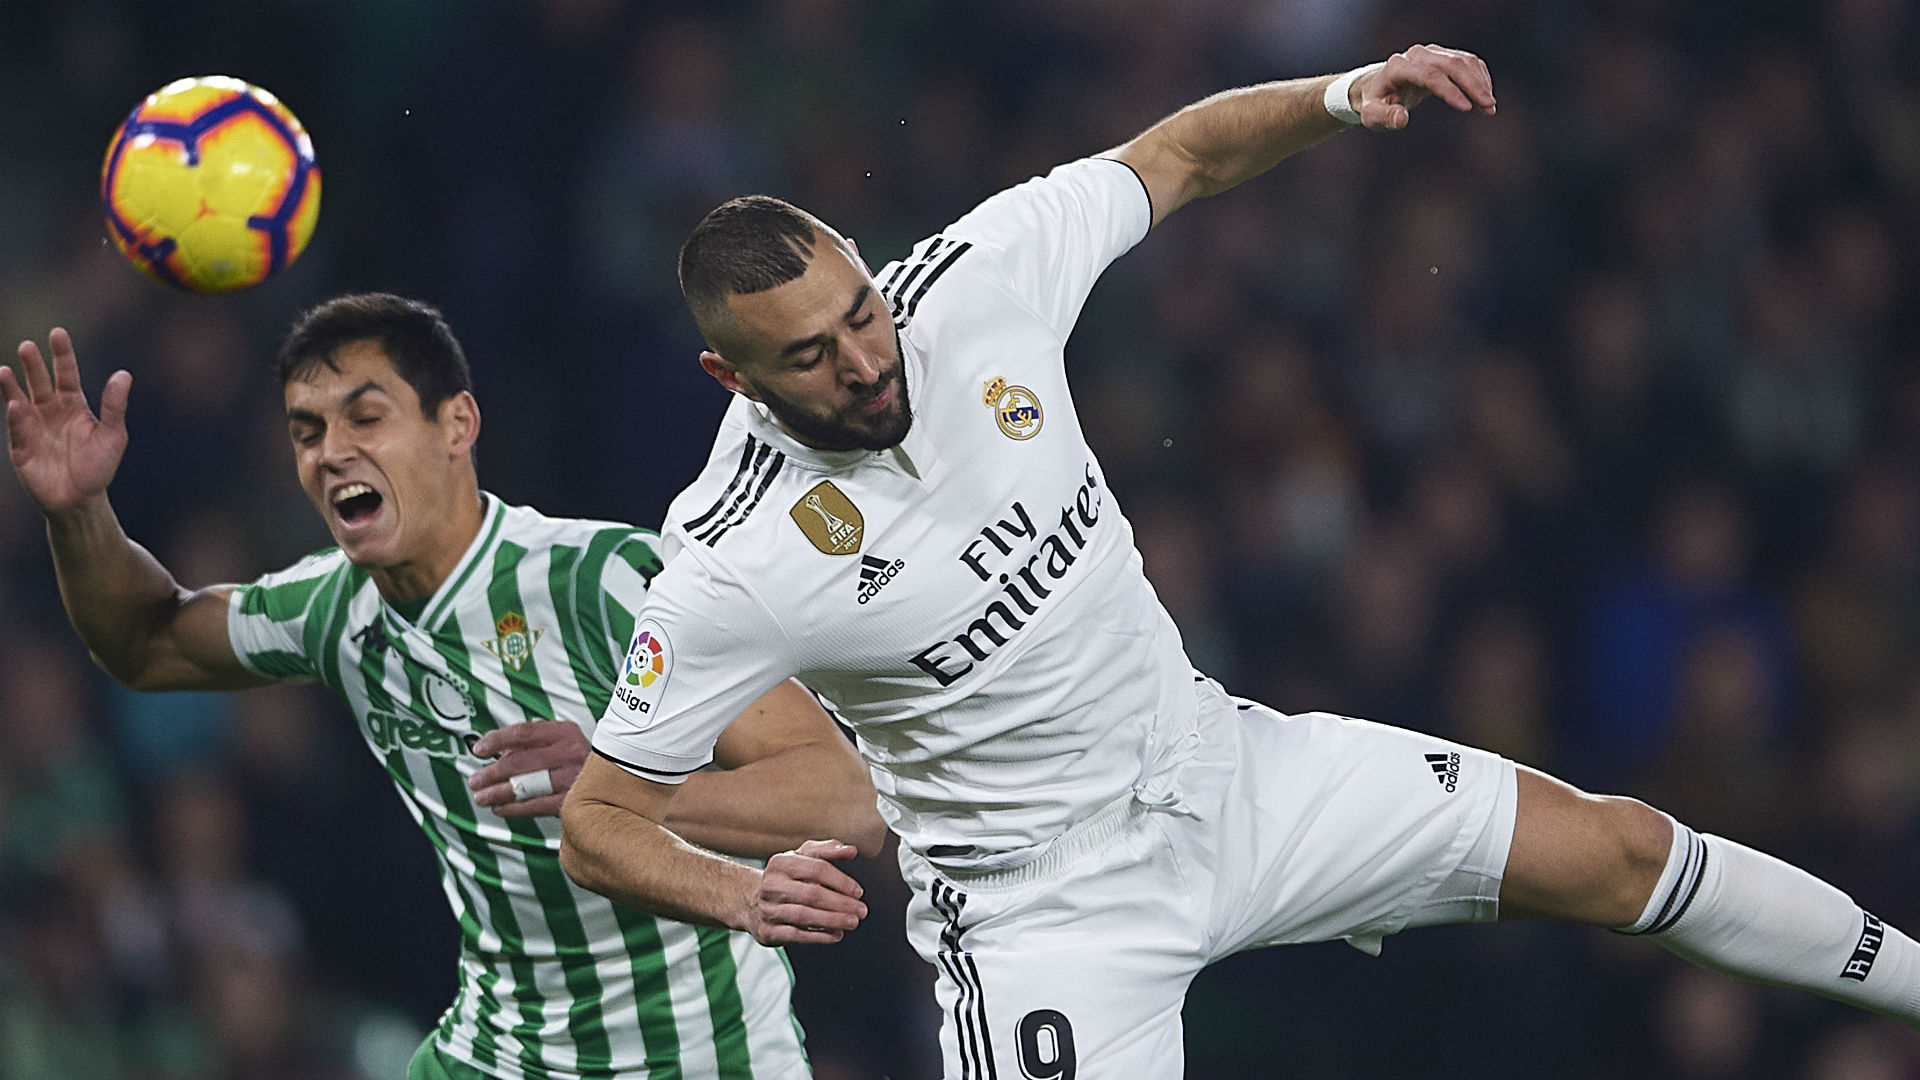 Benzema fit to face Sevilla despite broken finger, Solari confirms